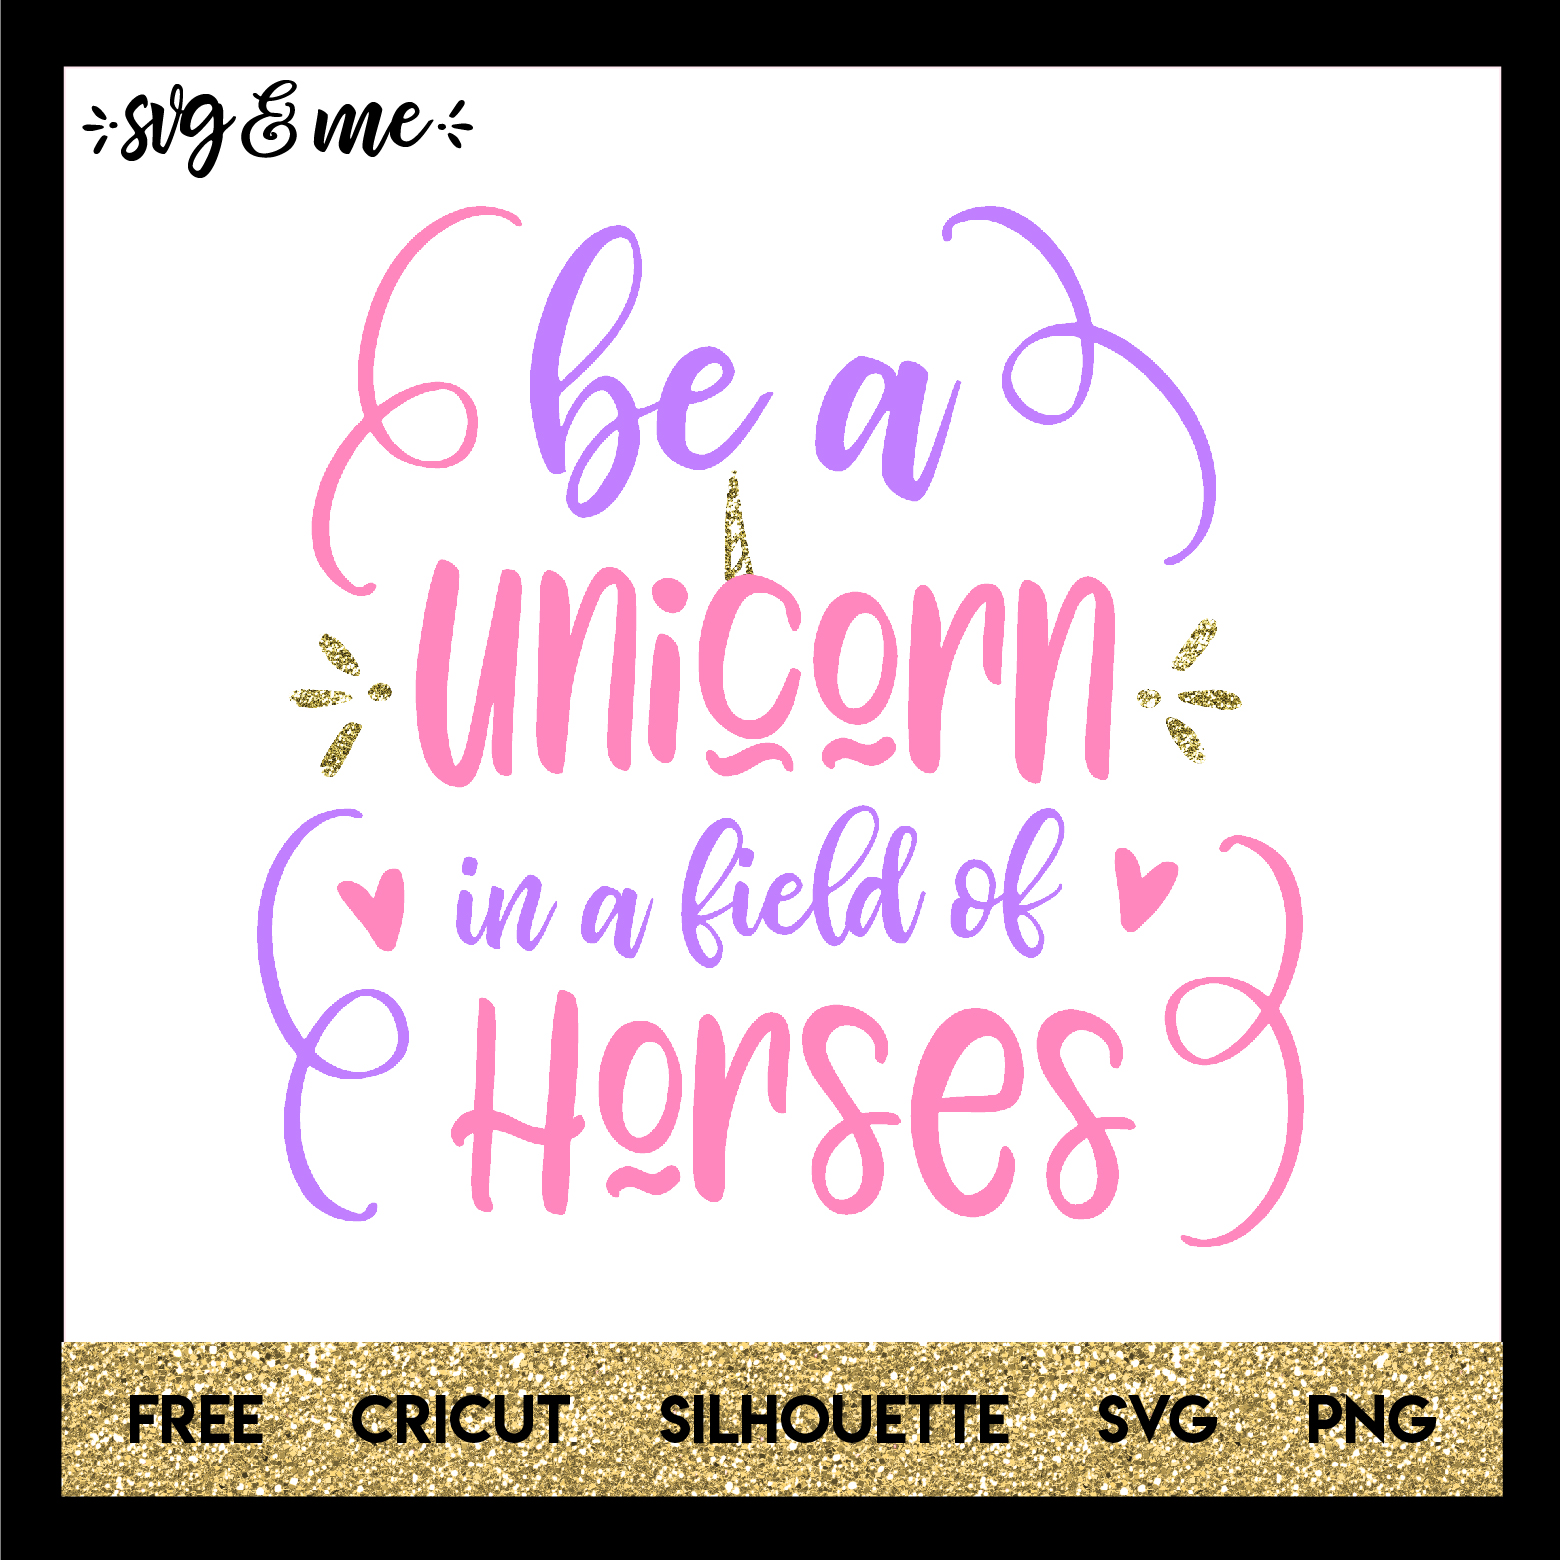 graphic about Be a Unicorn in a Field of Horses Free Printable referred to as Be a Unicorn within just a Sector of Horses - SVG Me